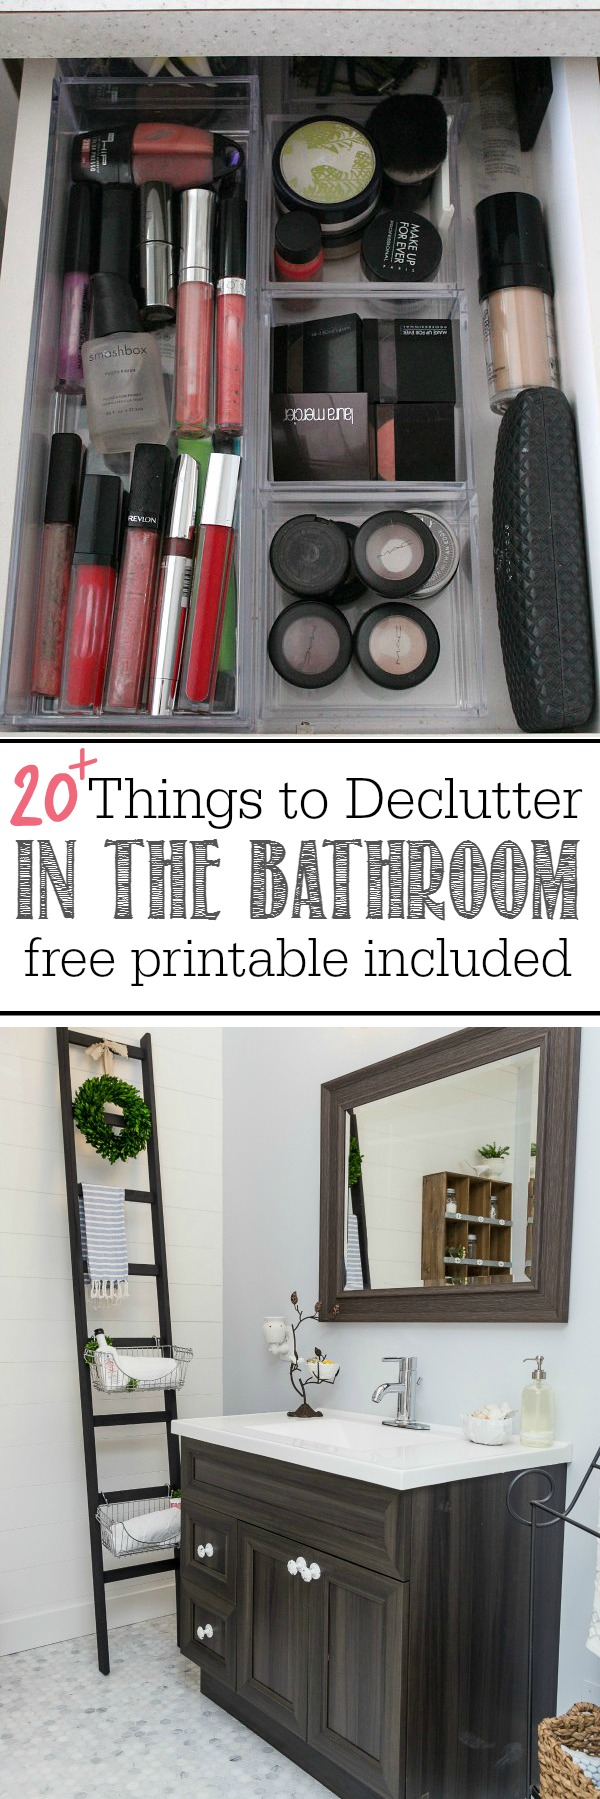 Bathroom Things: How To Keep Your Bathroom Cleaned And Organized